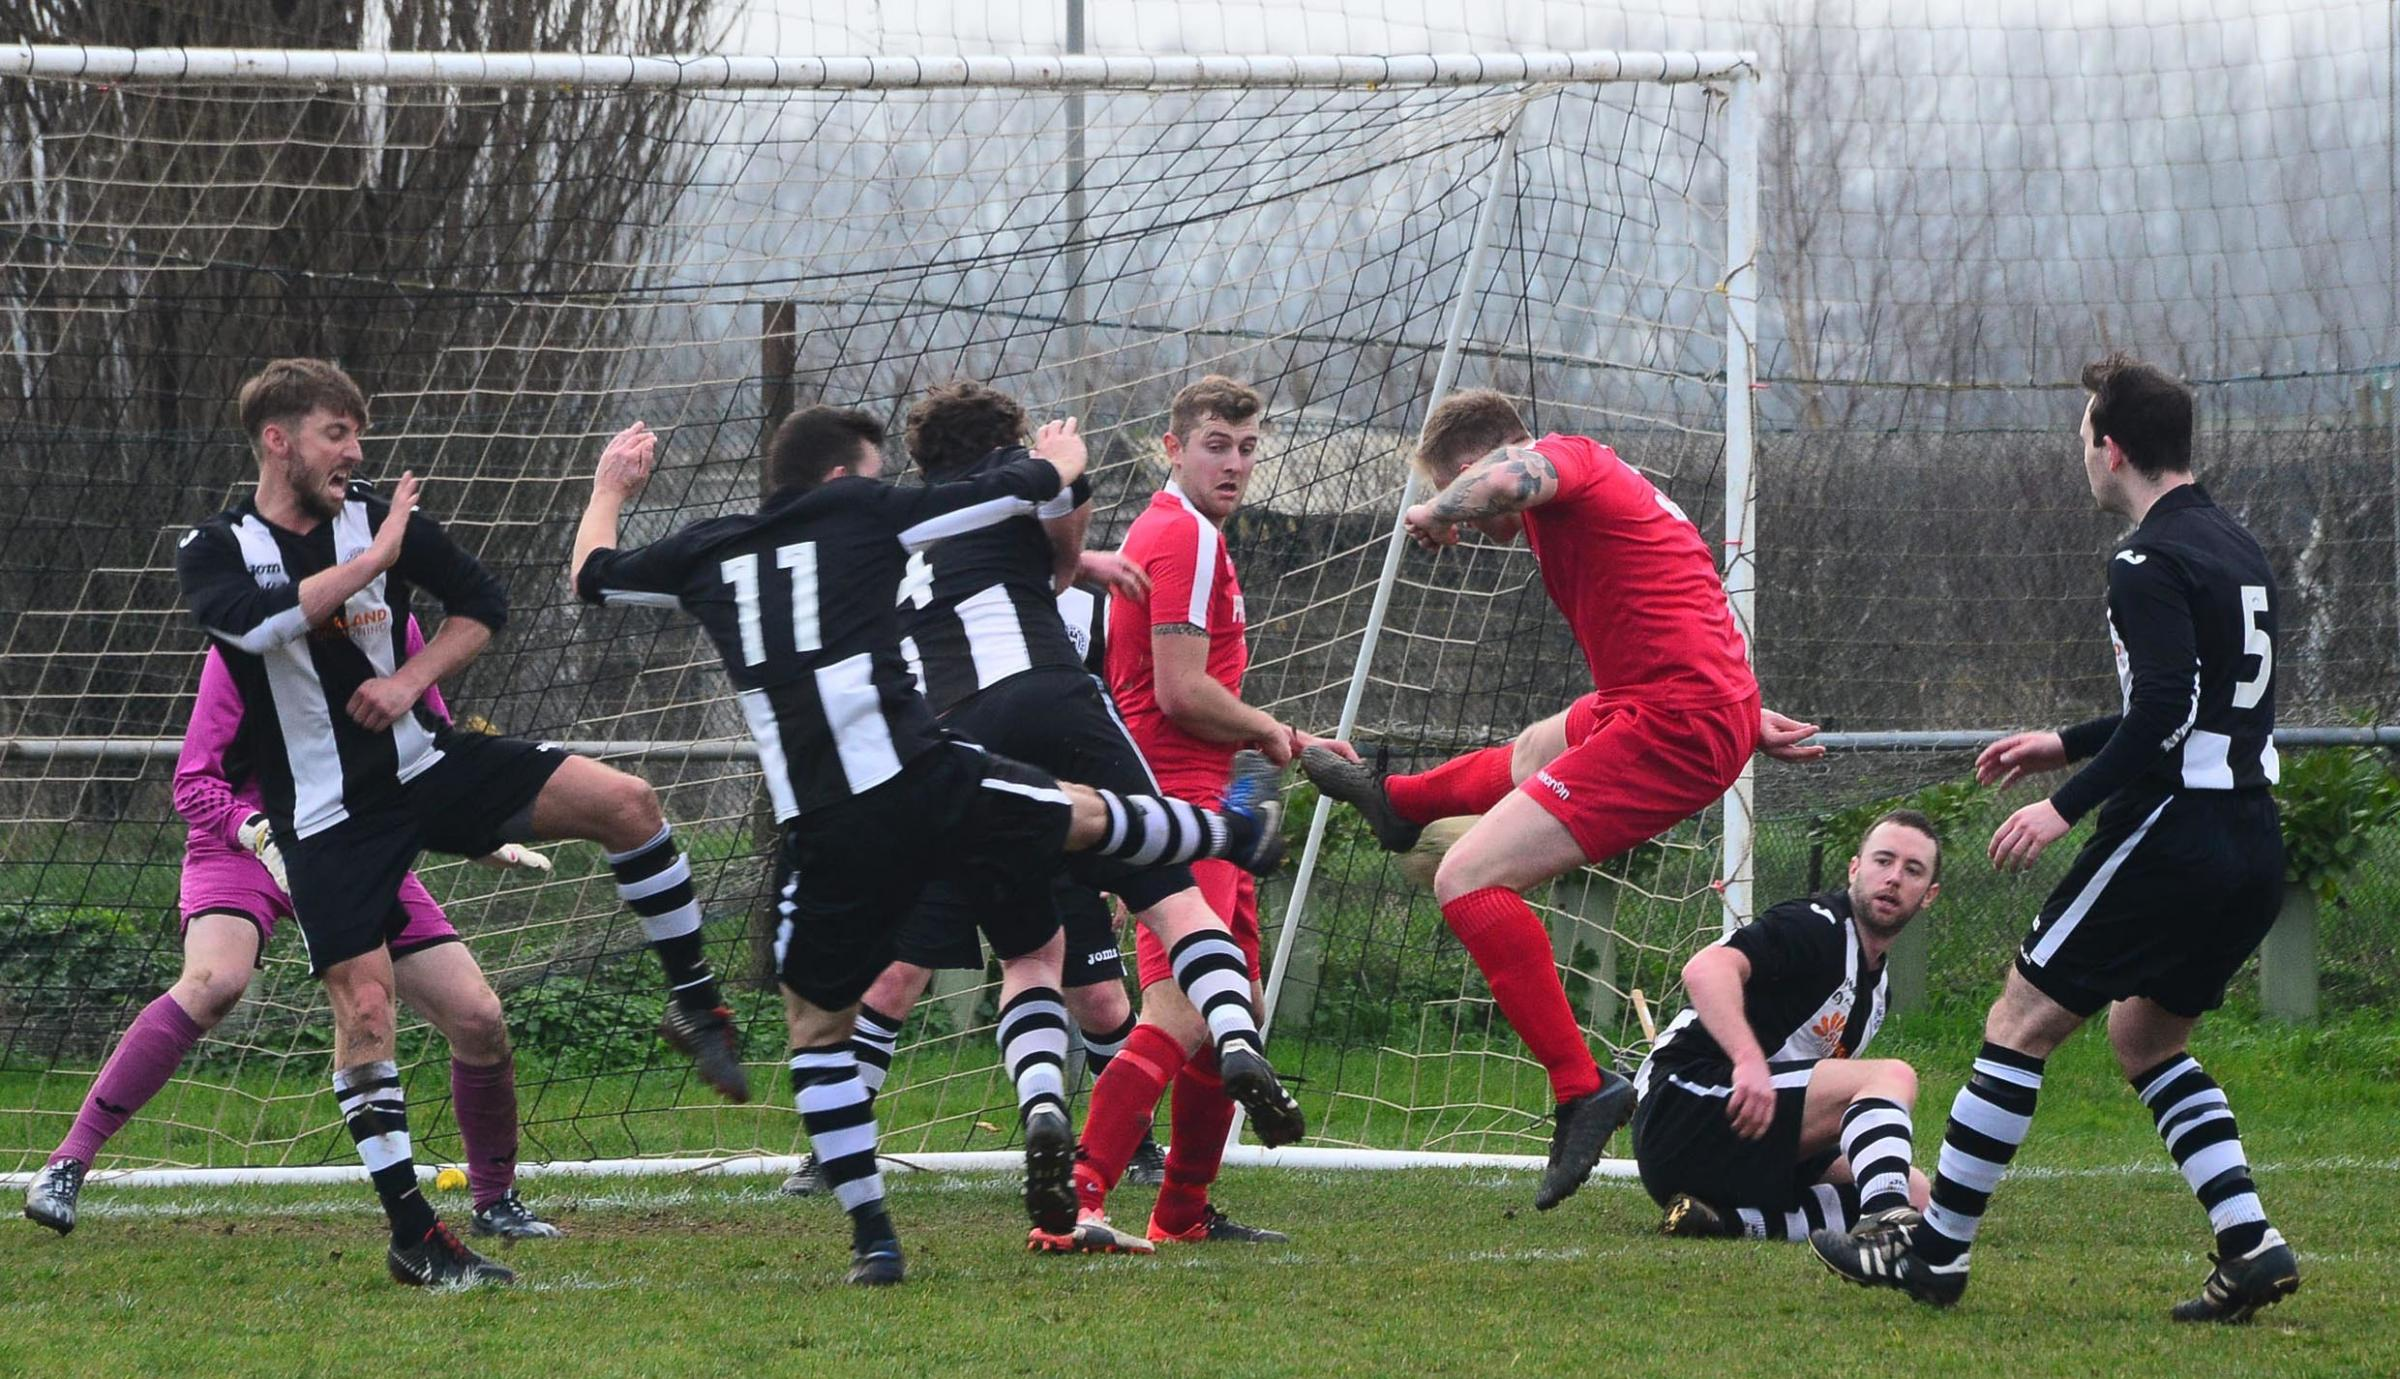 CLOSE: Middlezoy Rovers and Middlezoy Reserves are both in good form going into the end of the season. Pic: Steve Richardson